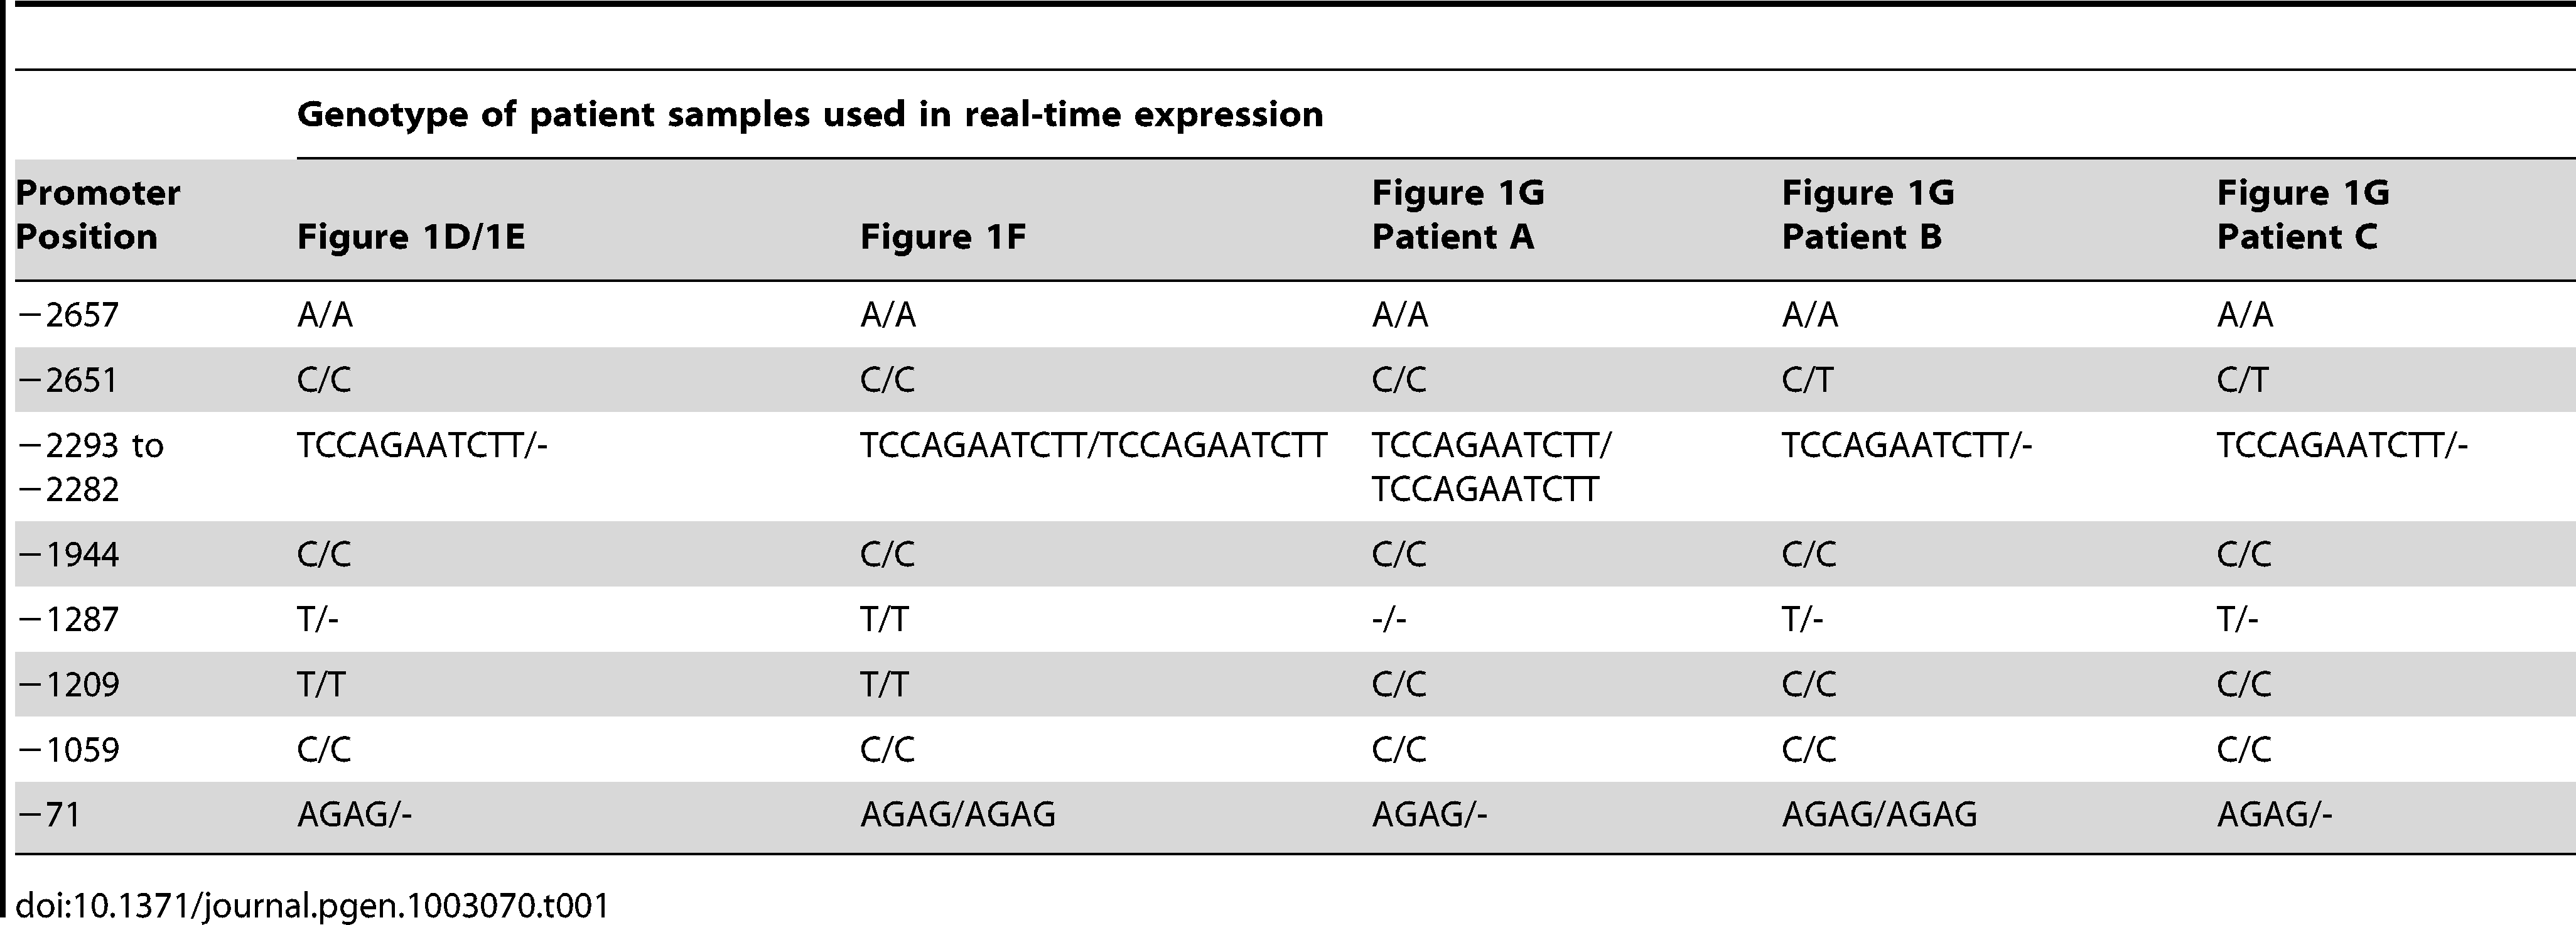 Genotypes of BEEC patient samples used in real-time expression experiments.